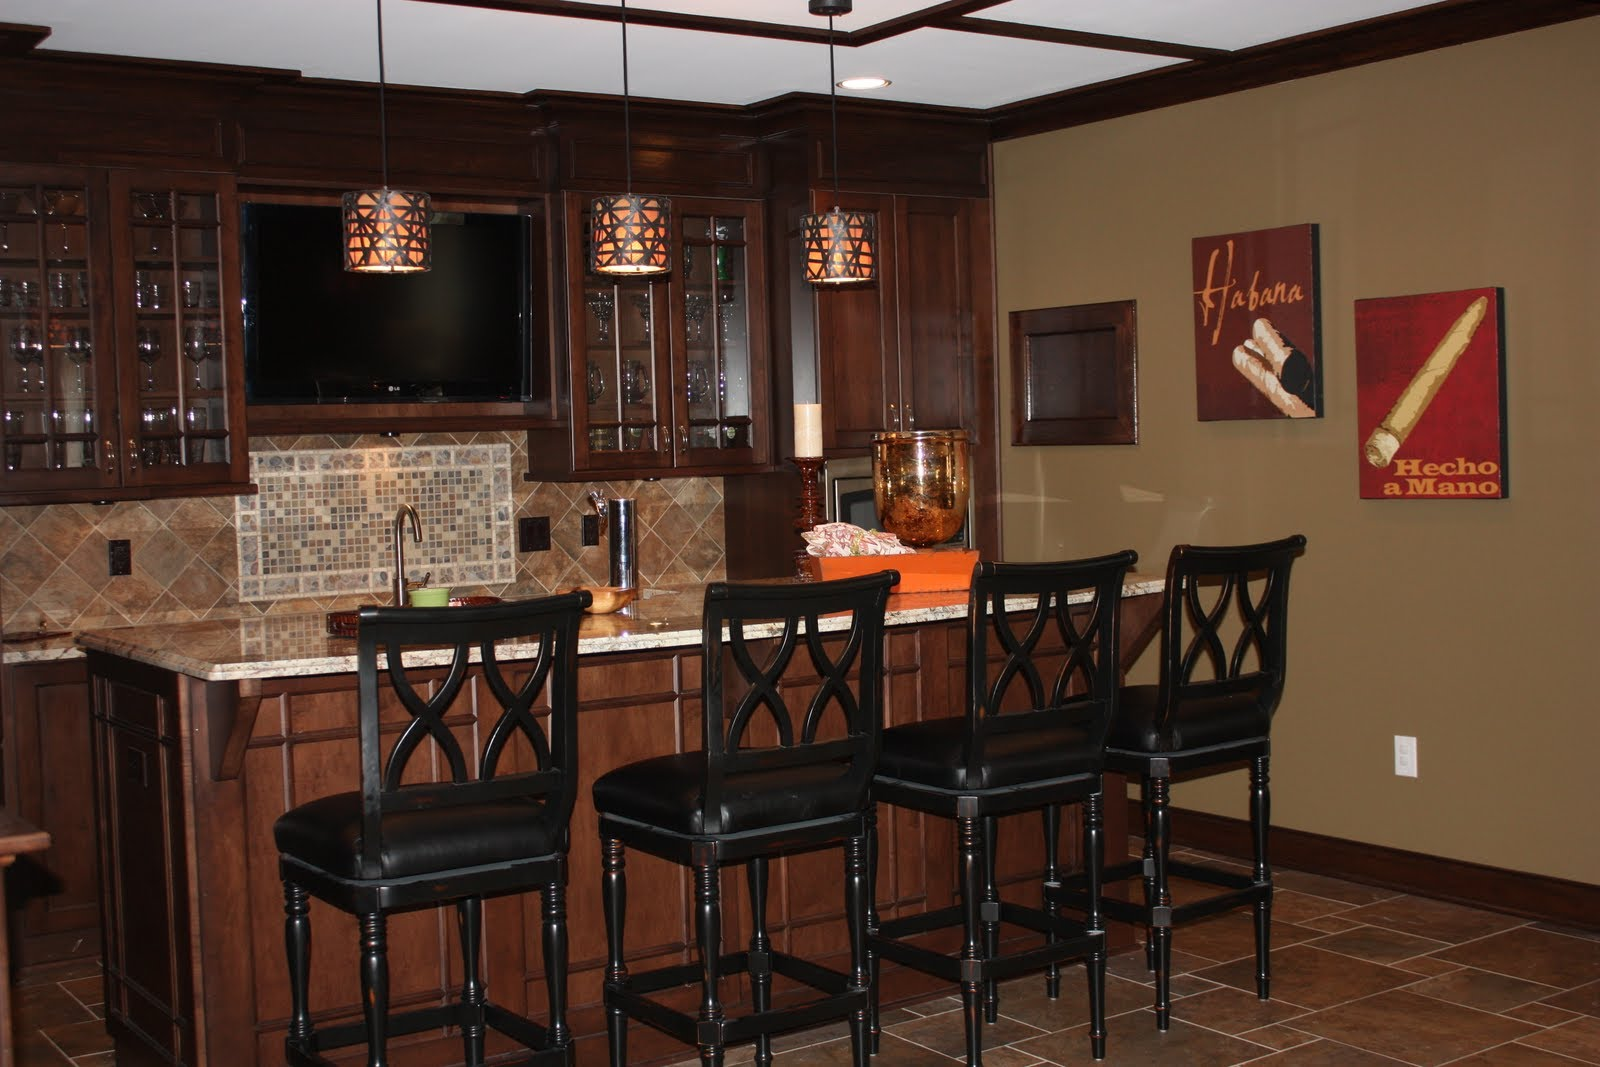 finished basements and bar ideas for your home fair lawn paramus hawthorne nj